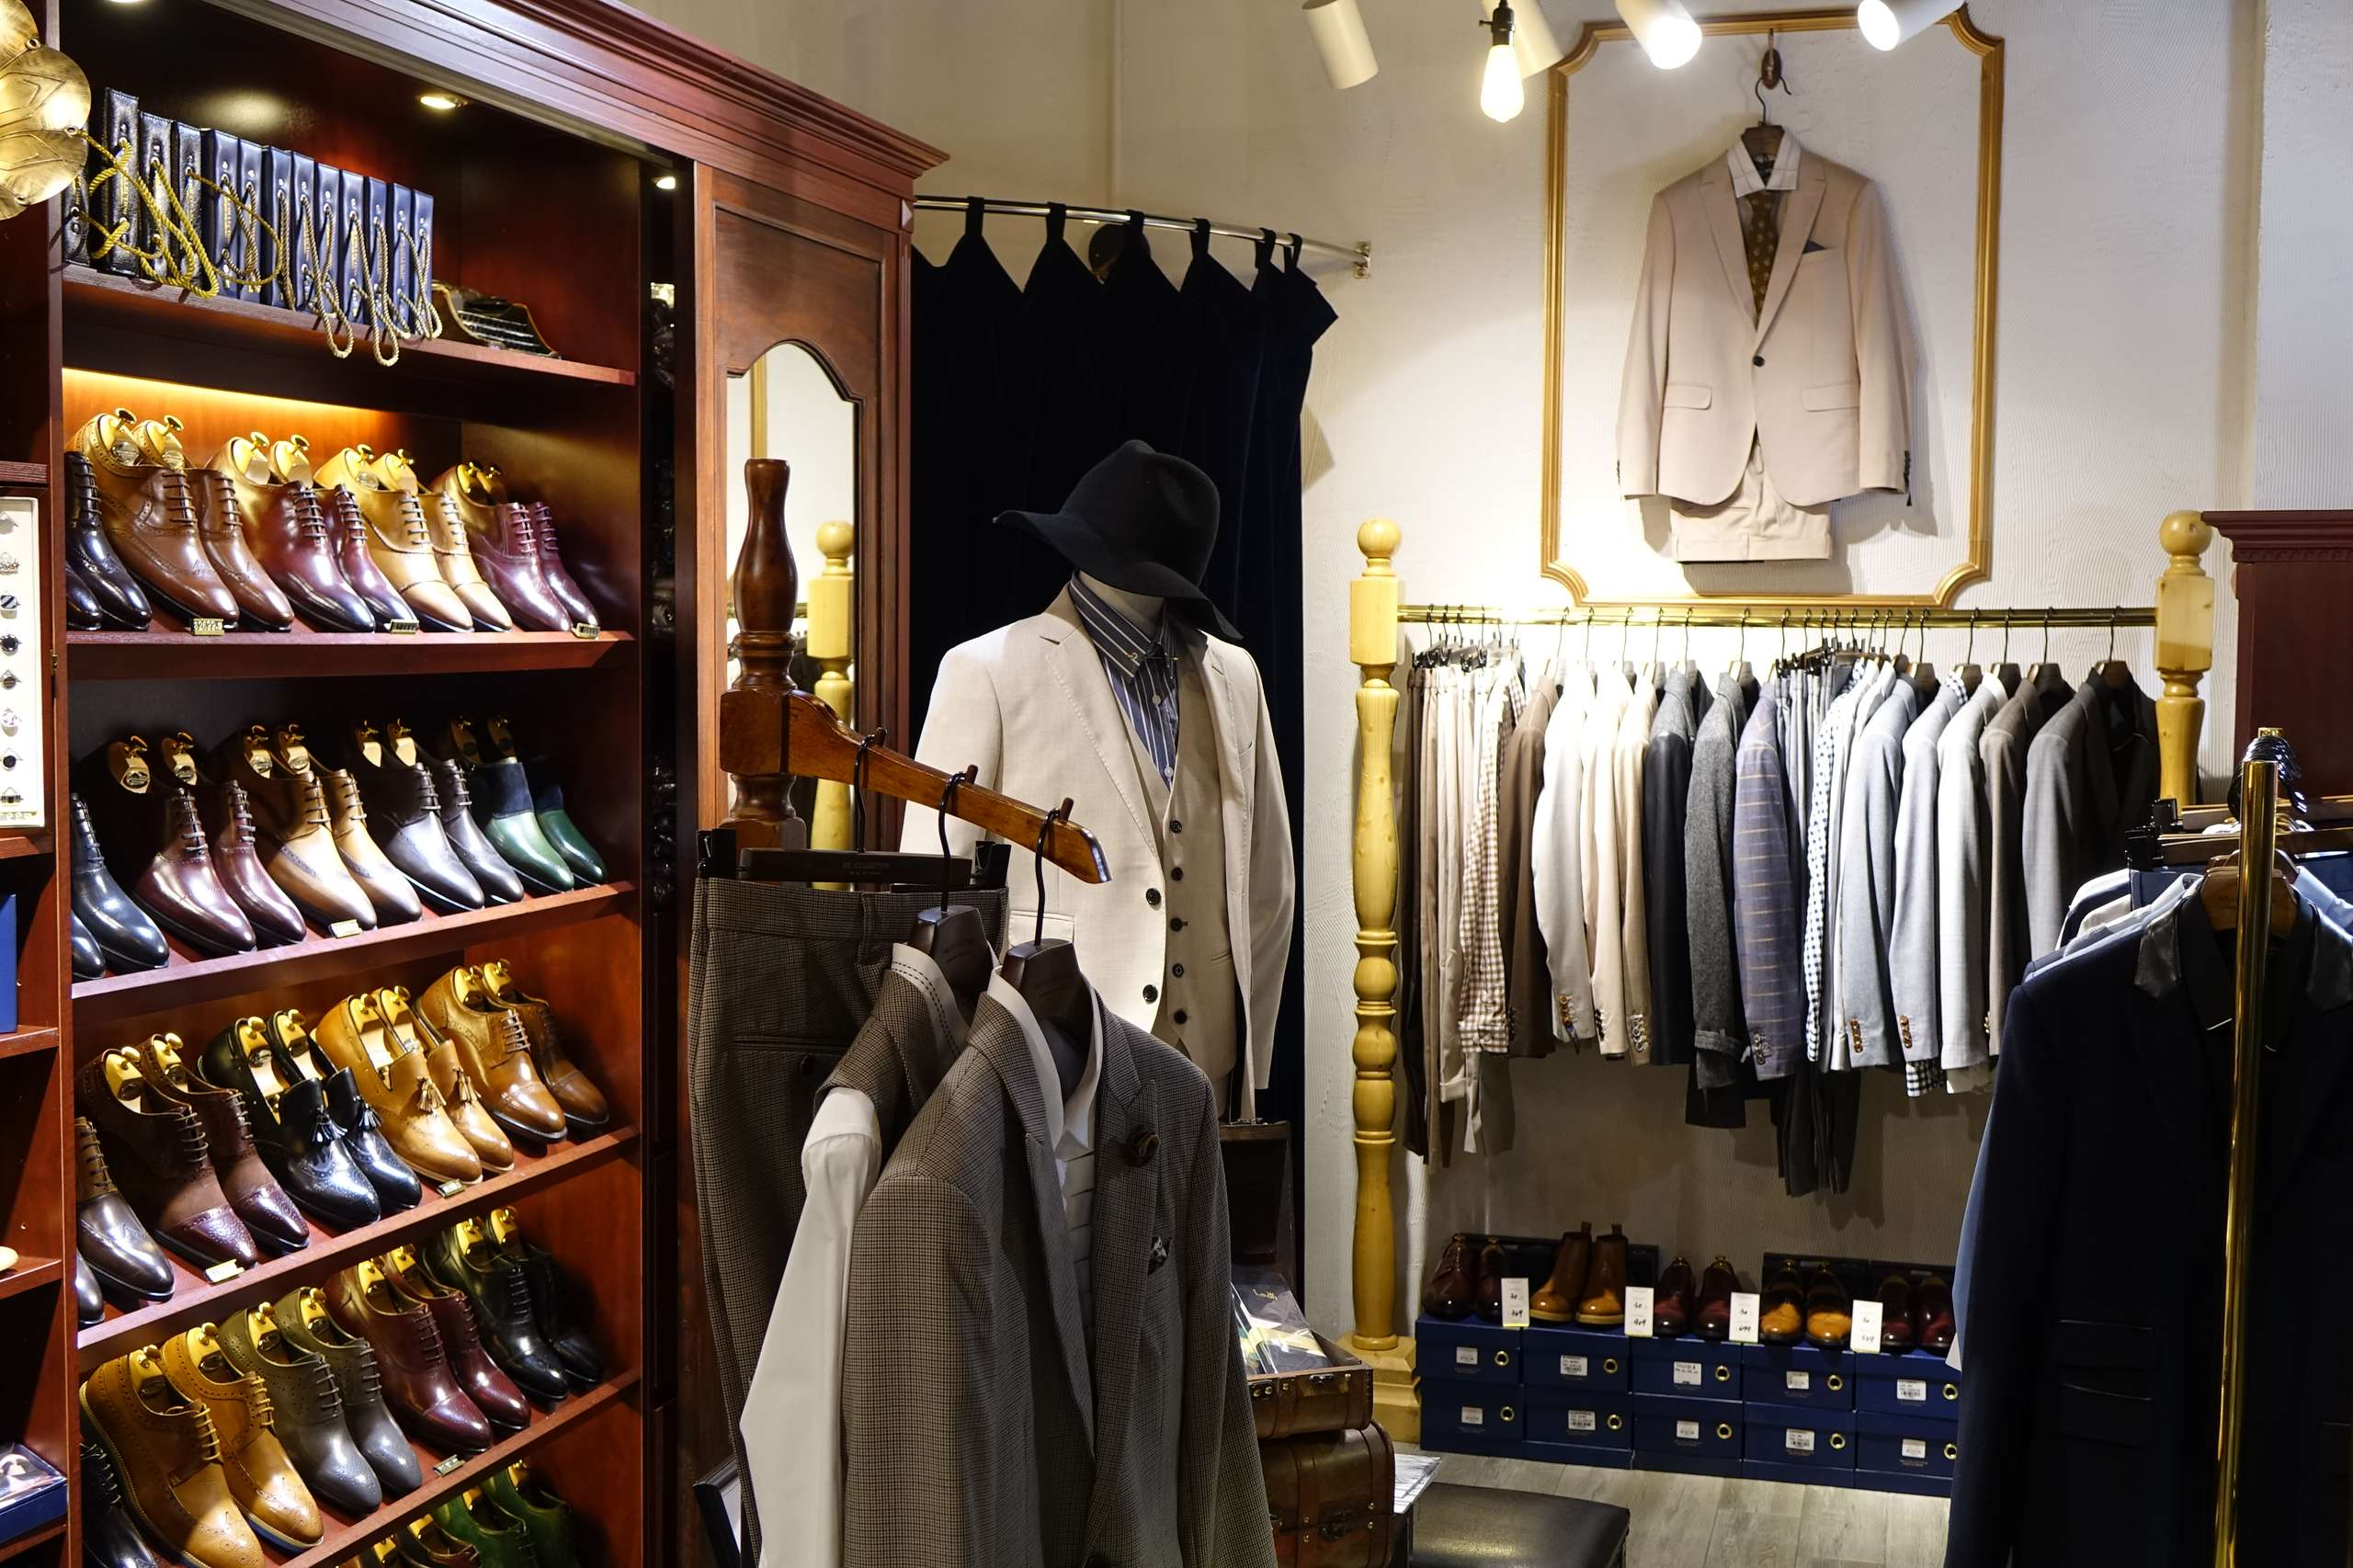 Interior shot of Mr. Collection shop